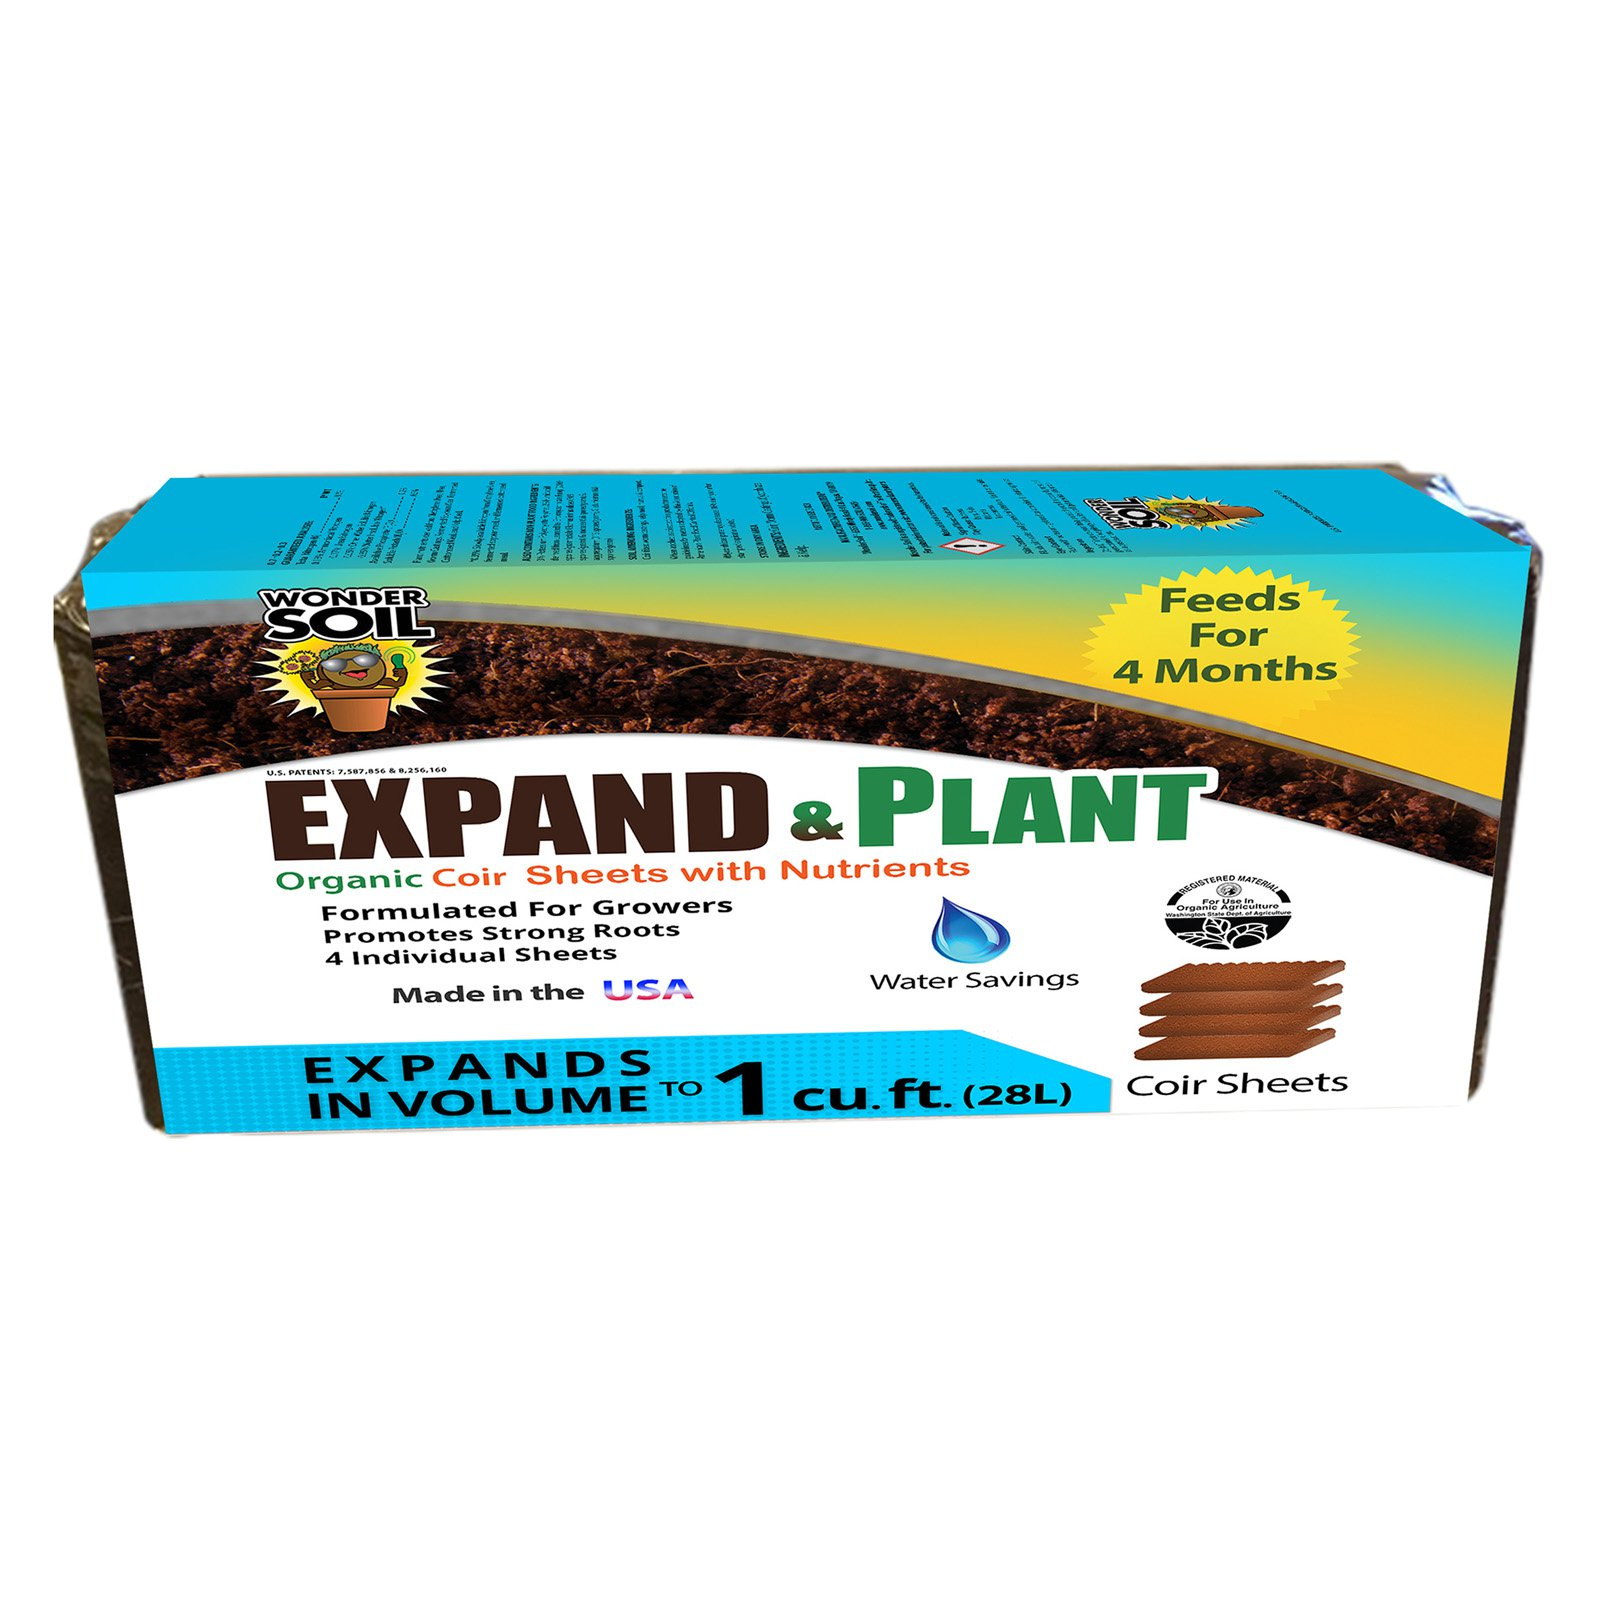 Wonder Soil Expand & Plant Organic Soil Sheets - 4 Pack